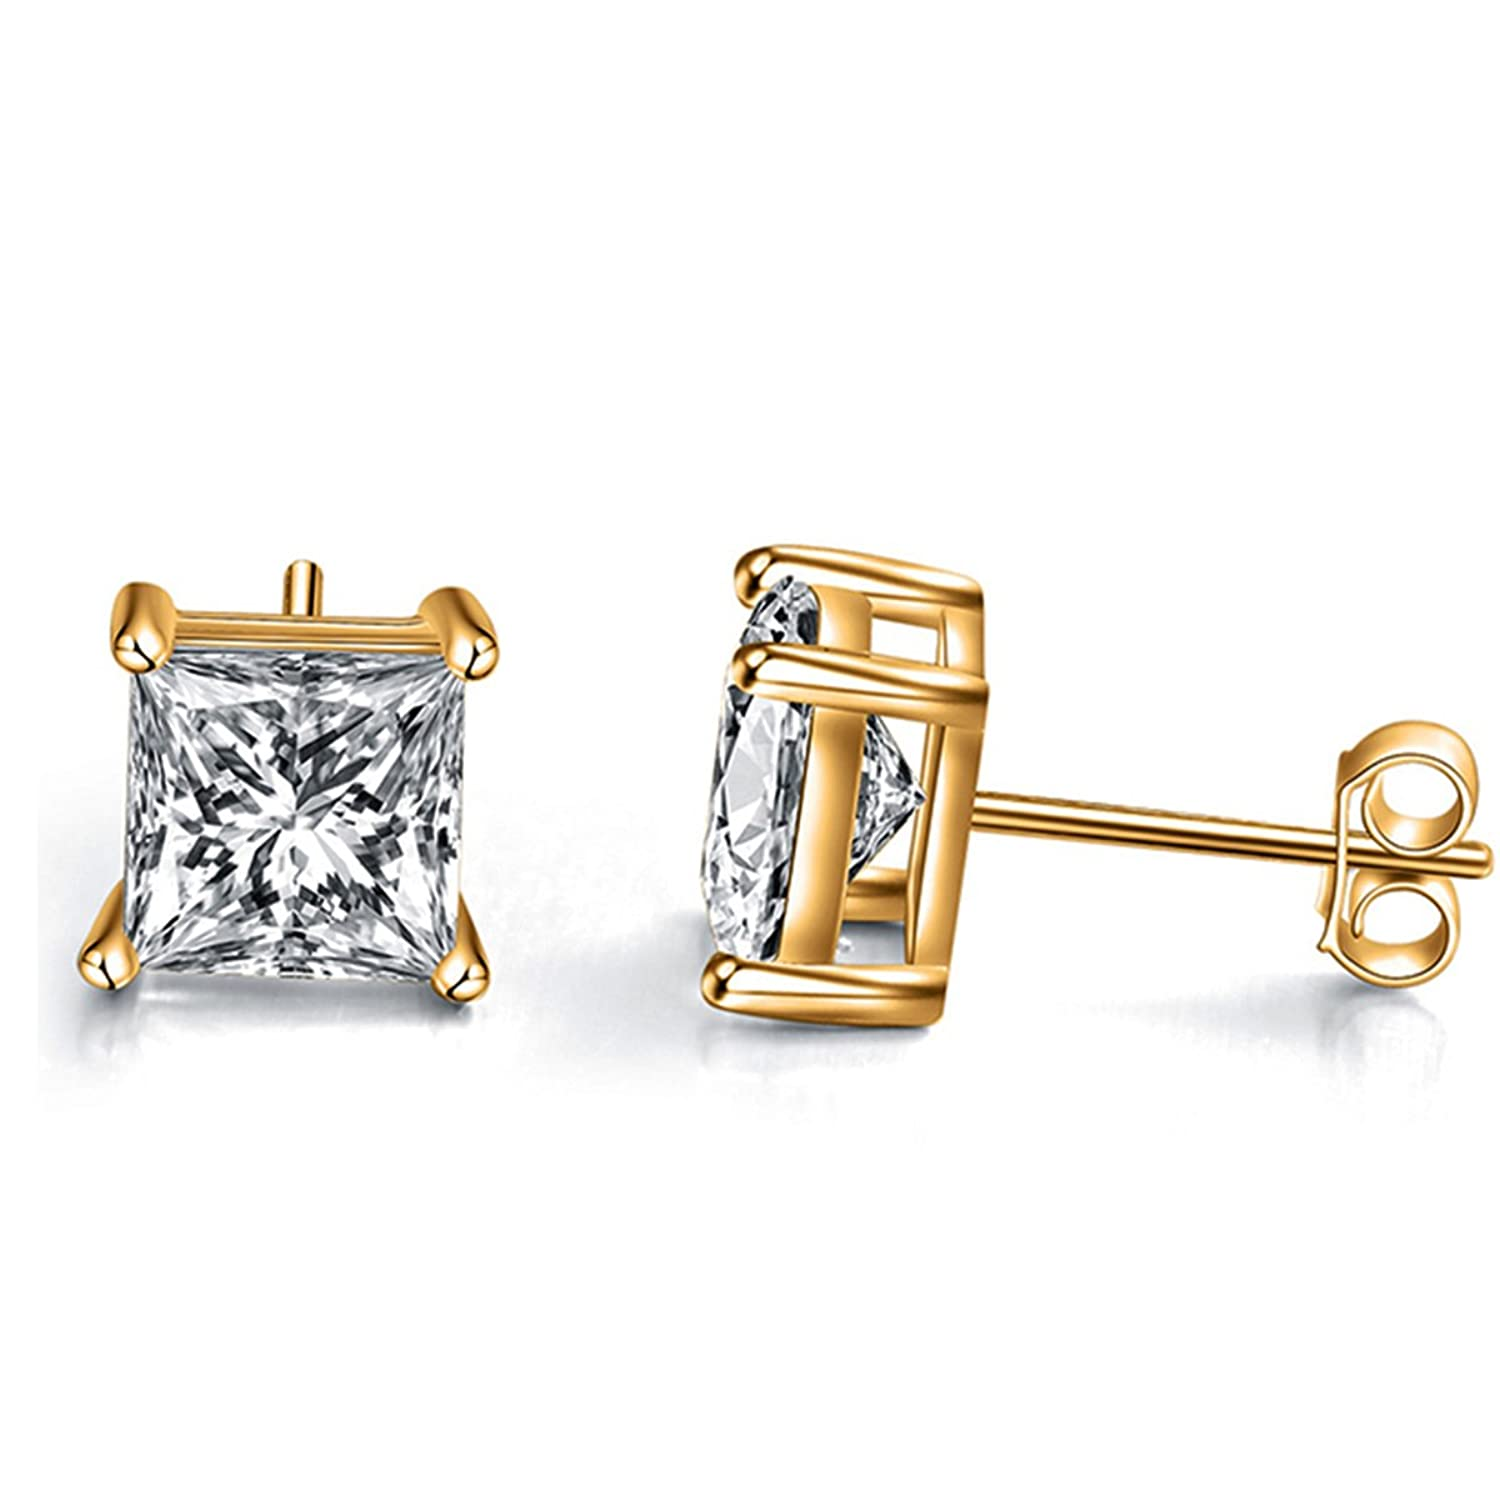 Sephla Gold Plated 925 Sterling Silver 4 Prong Square Shape Cubic Zirconia Stud Earring CZ 4mm to 7mm